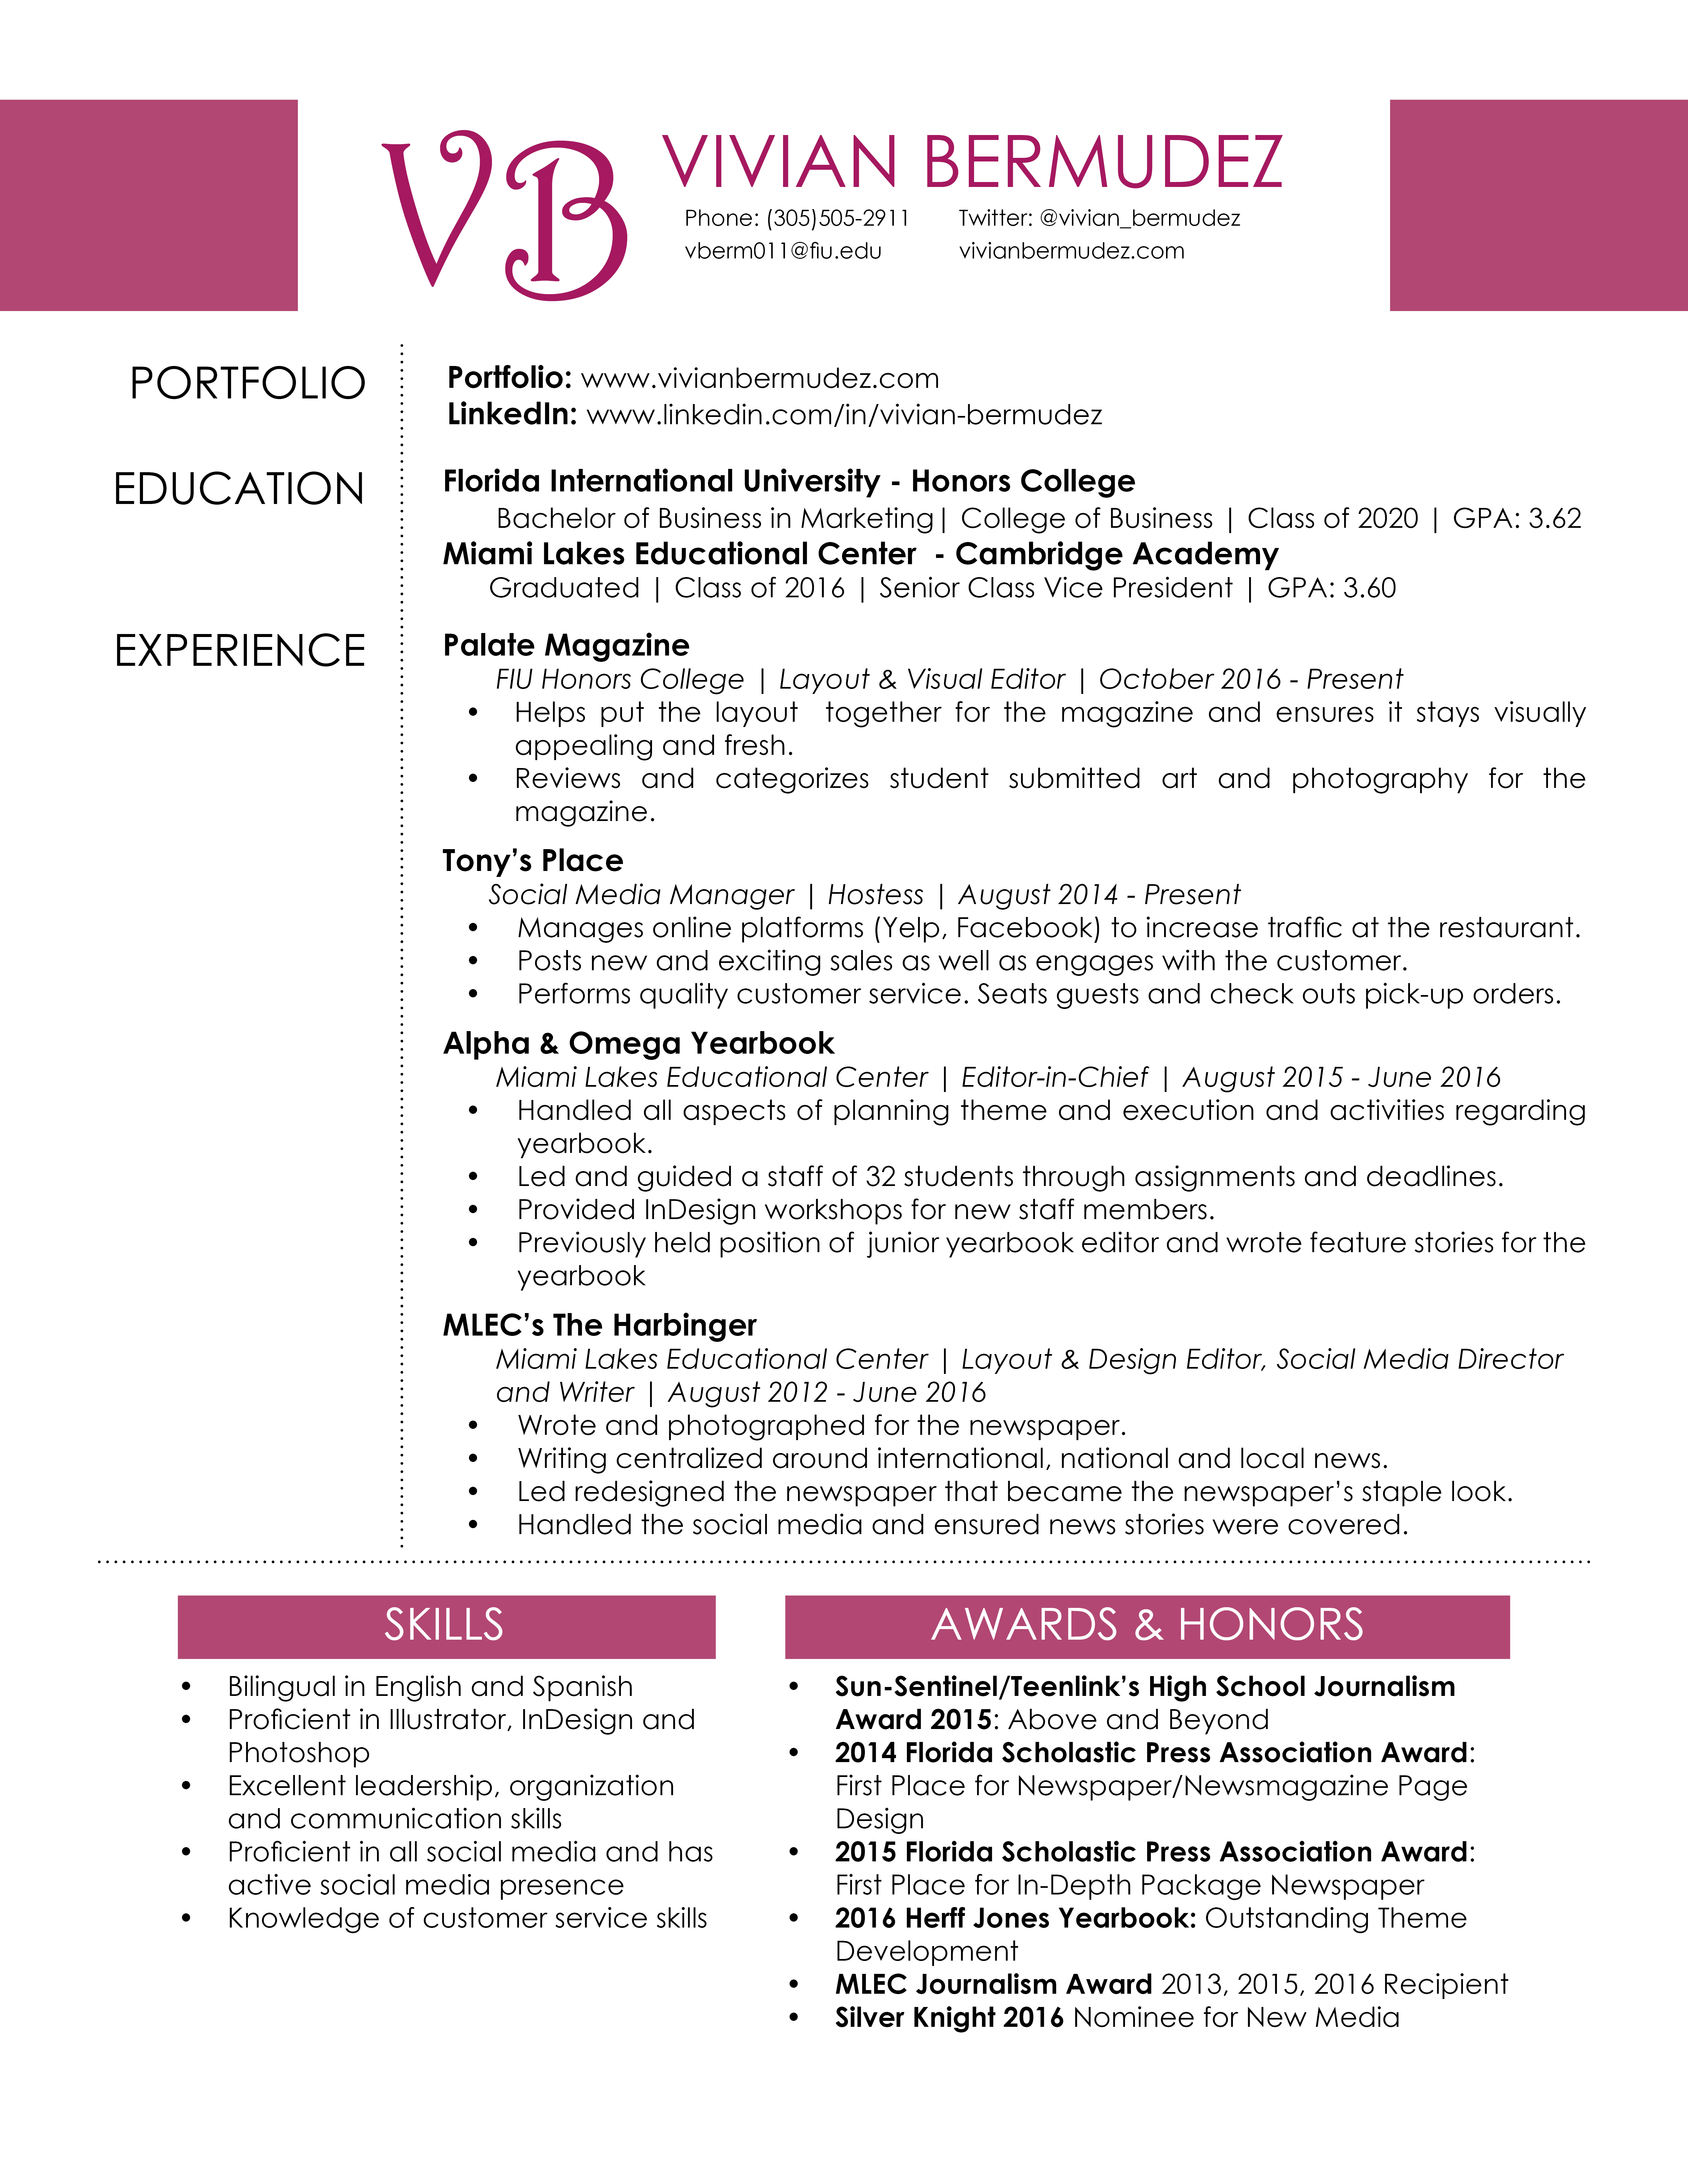 how put together resume and cover letter resume dock worker image how put together resume and cover letter resume ways the force